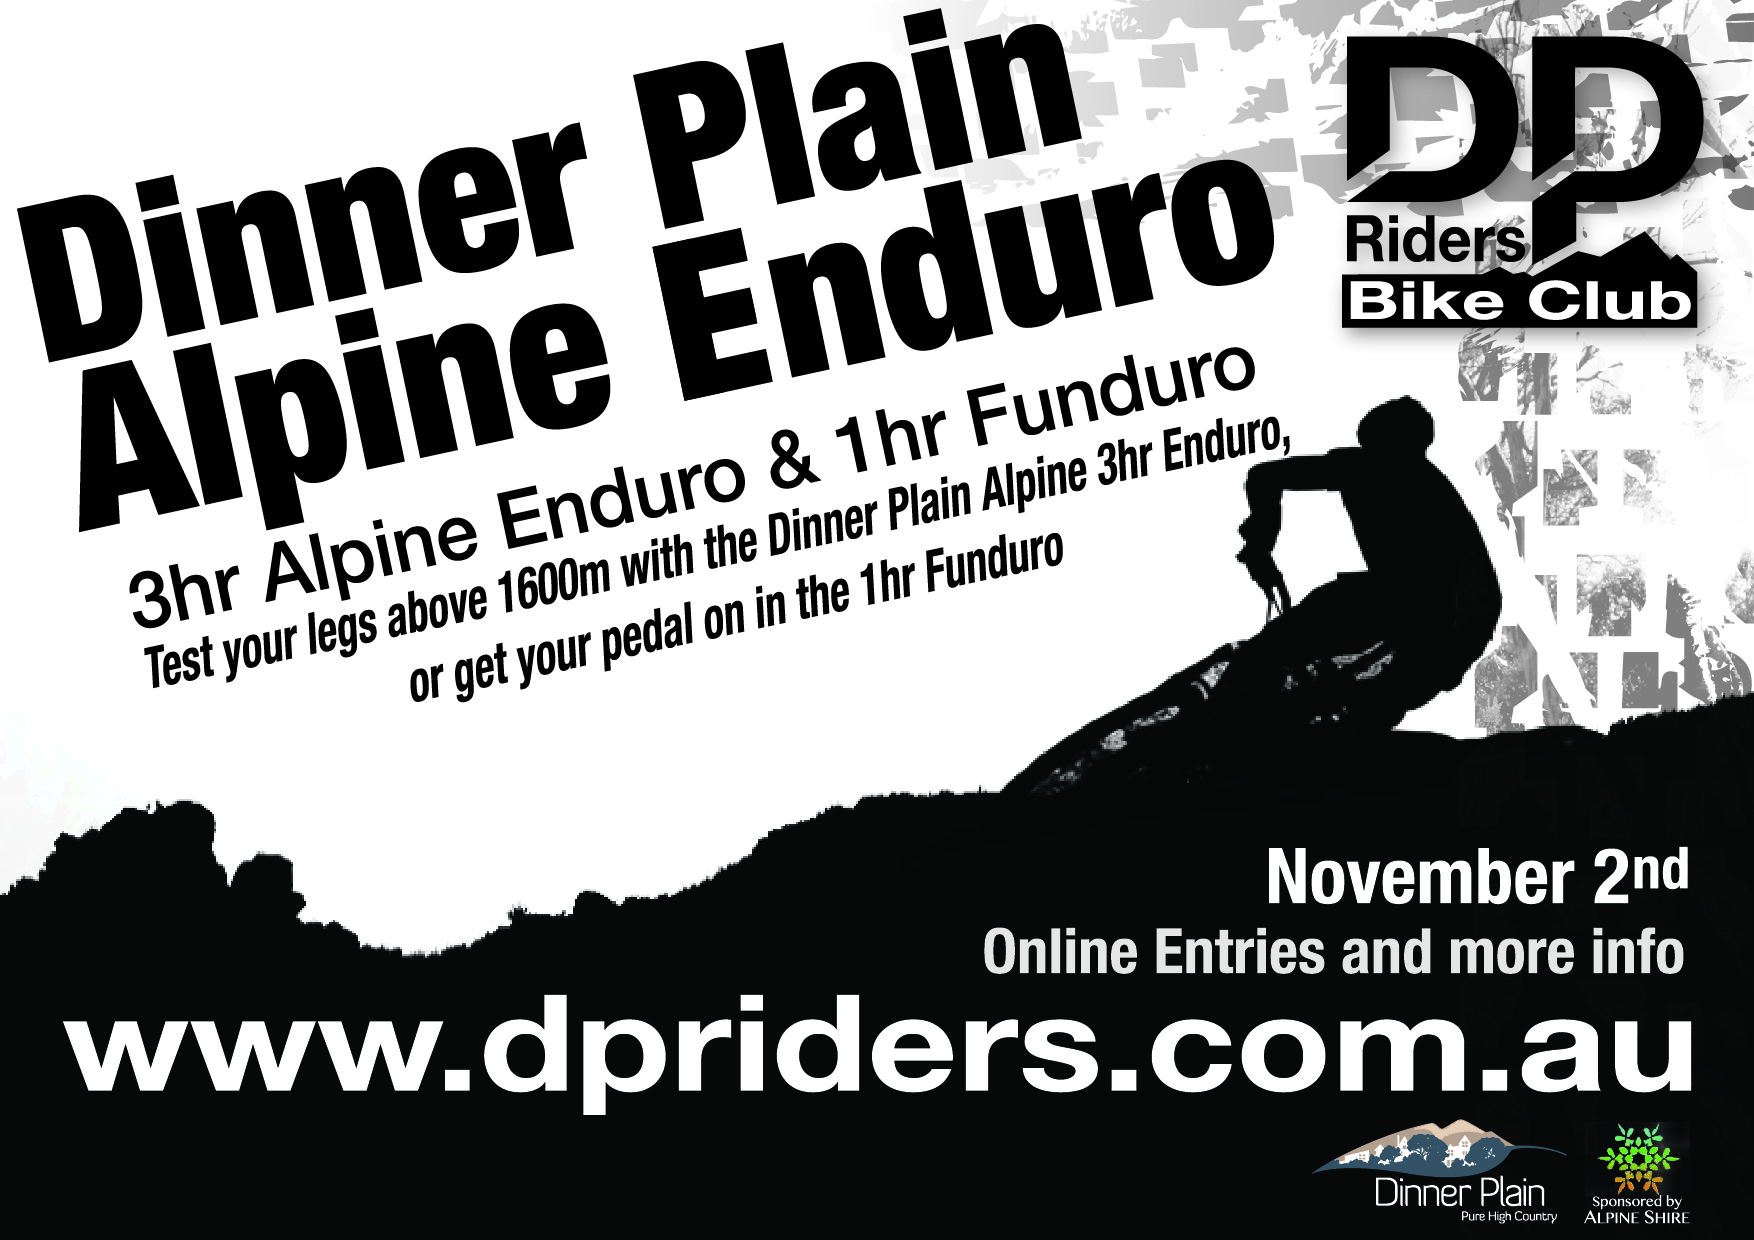 Dinner Plain Alpine Enduro 2014 Poster